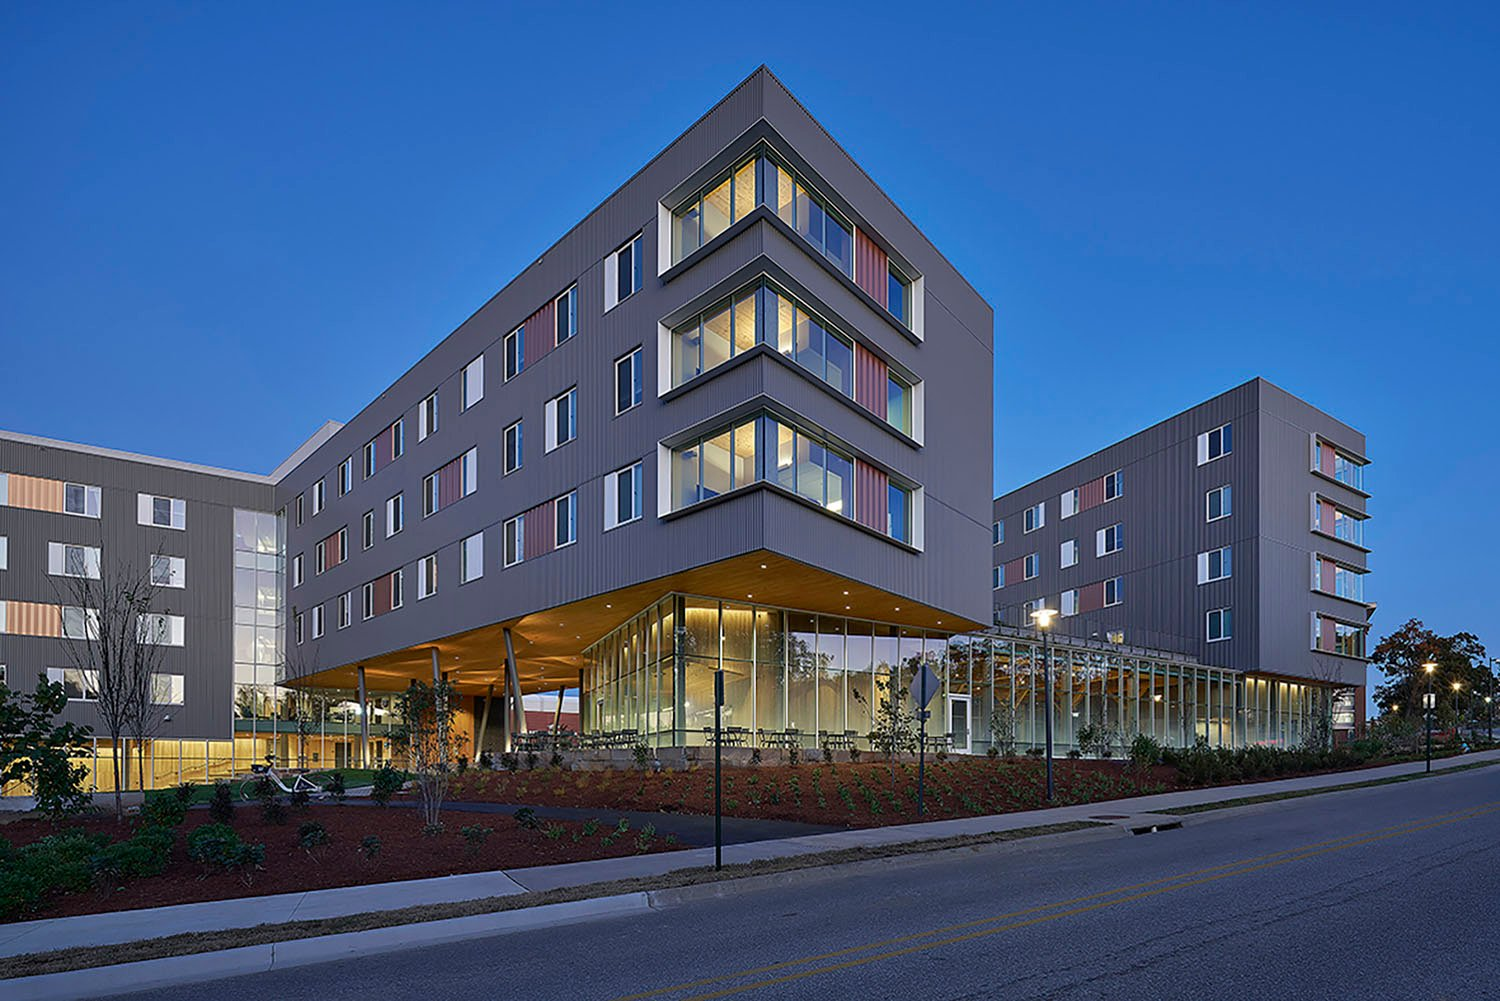 Adohi Hall Marks Southern Entry to Campus Tim Hursley Photography